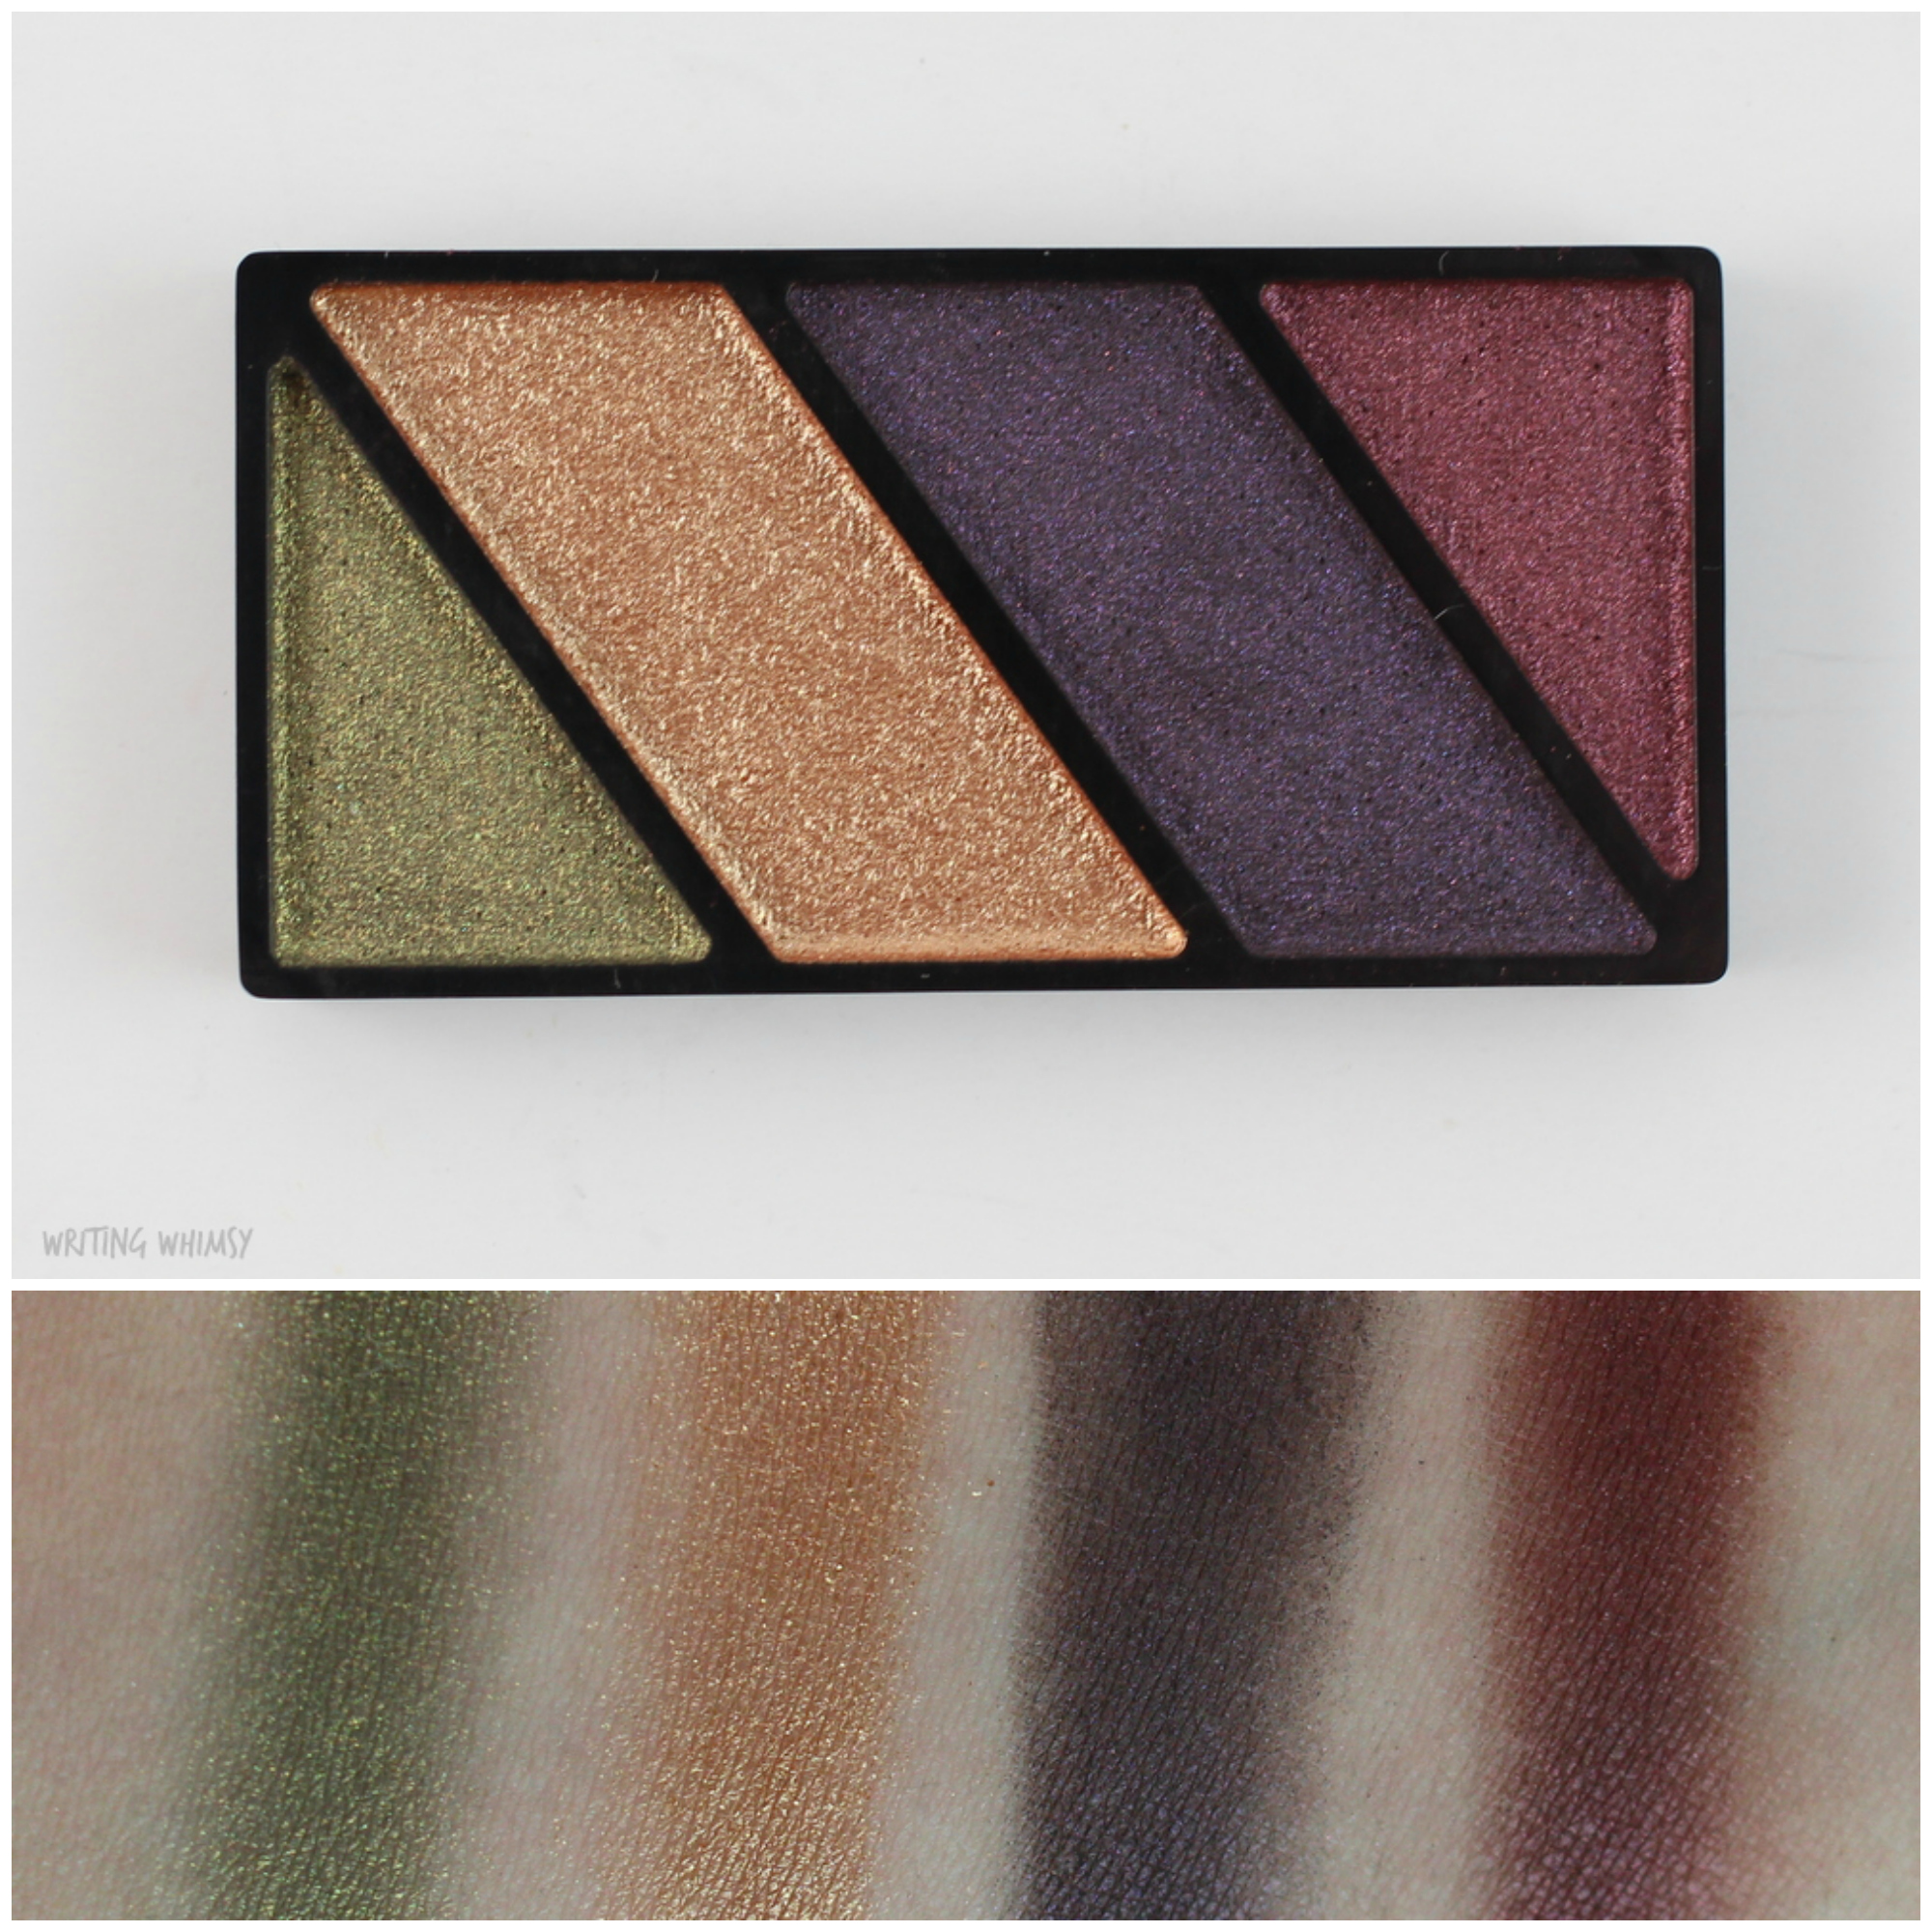 Mary Kay Mineral Eye Color Quads in Autumn Leaves and Sandstone 2 Collage